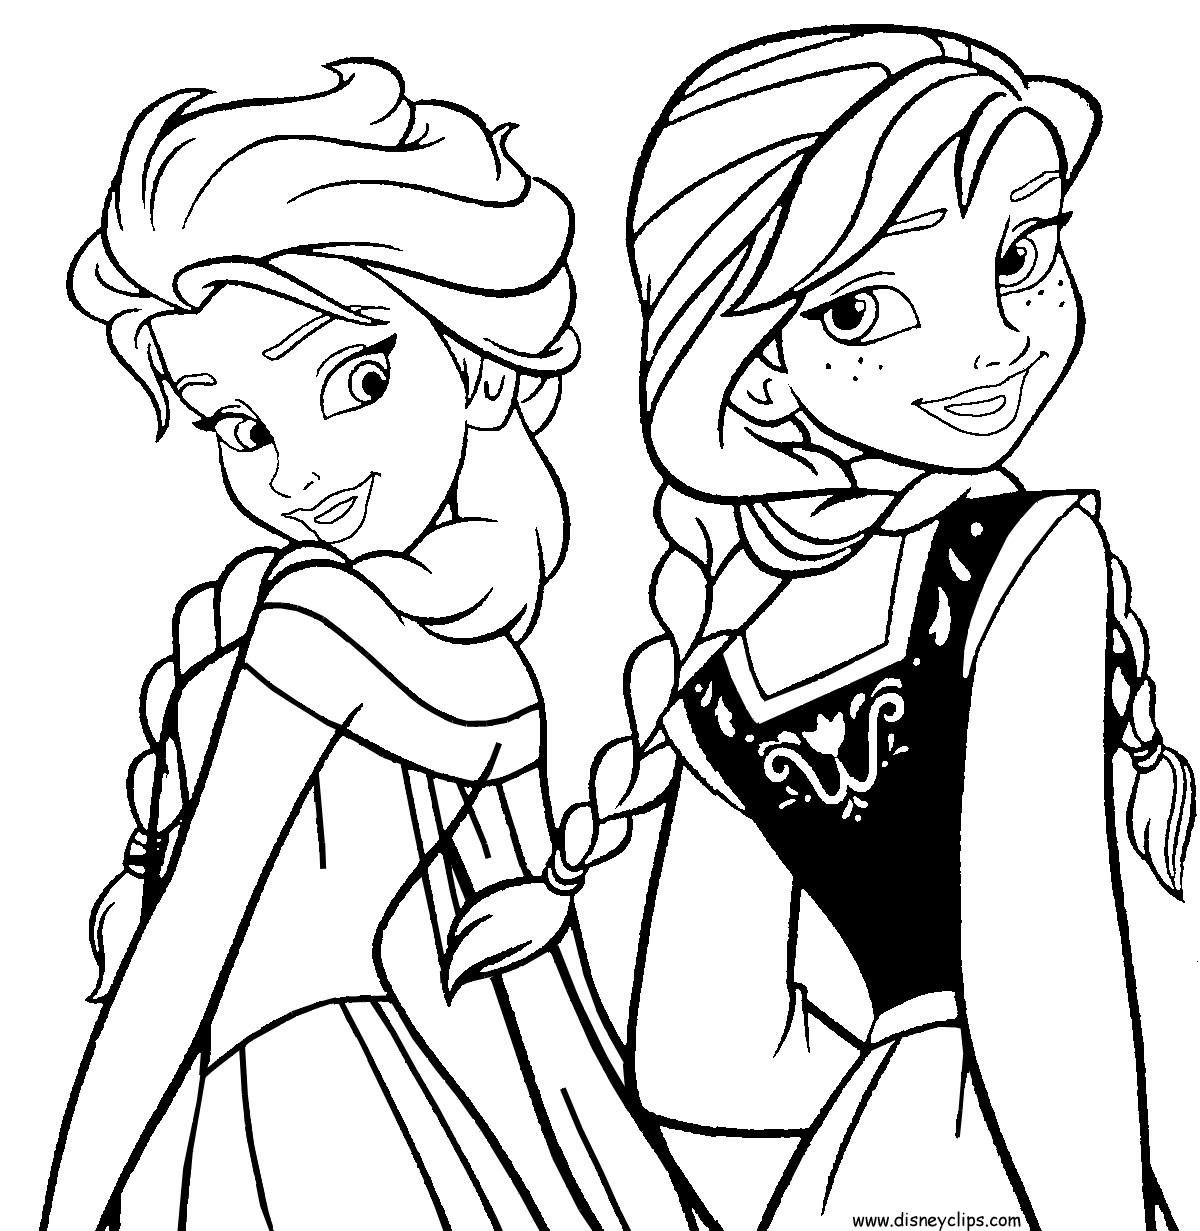 Explore Coloring Pages To Print and more